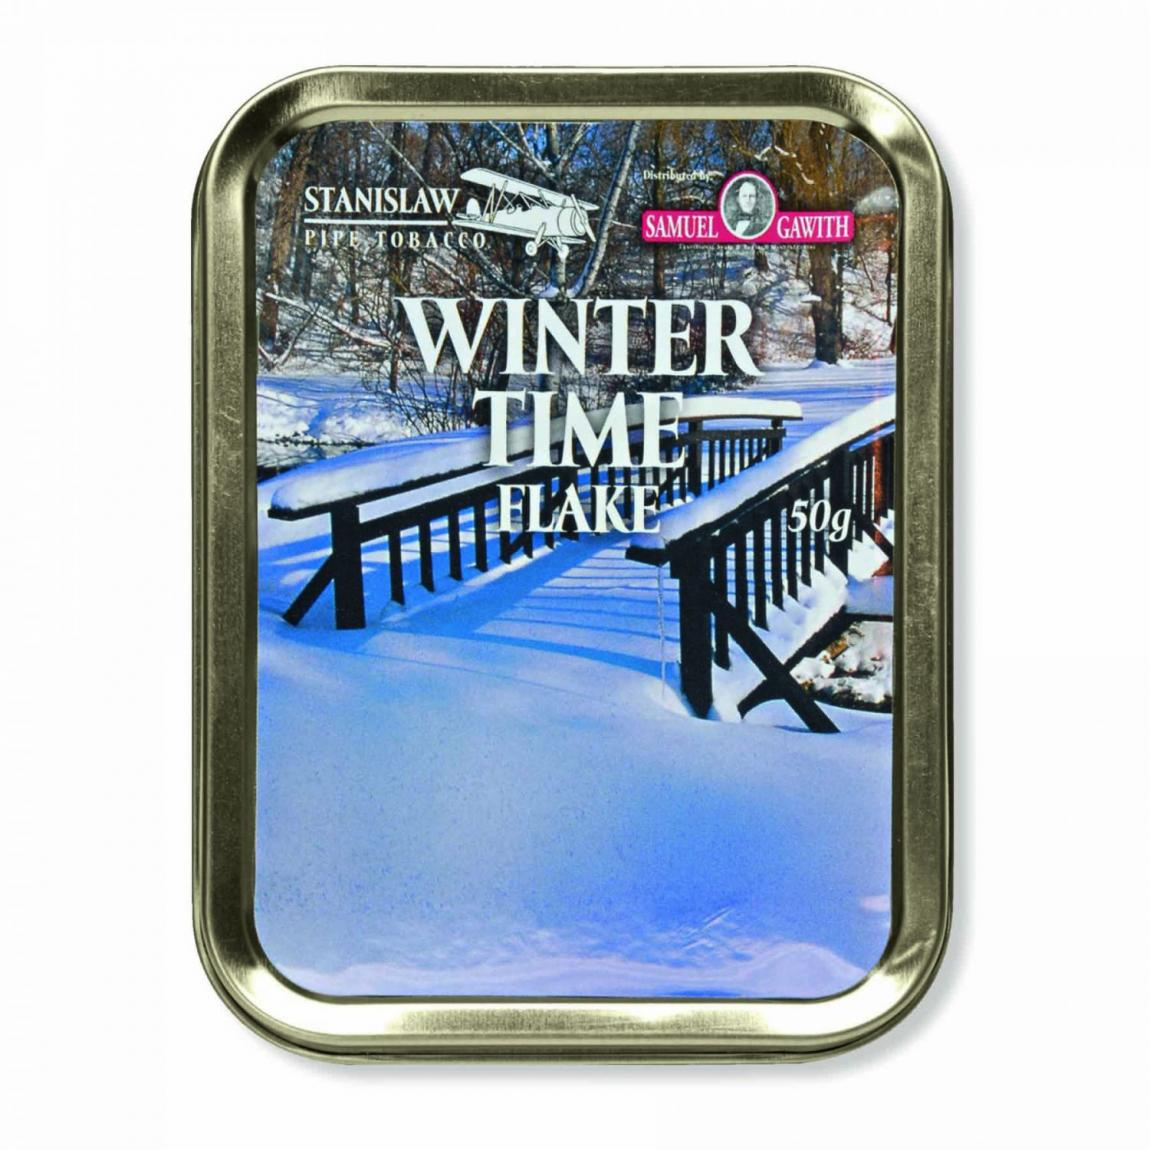 Samuel Gawith »Wintertime Flake« 50g Dose